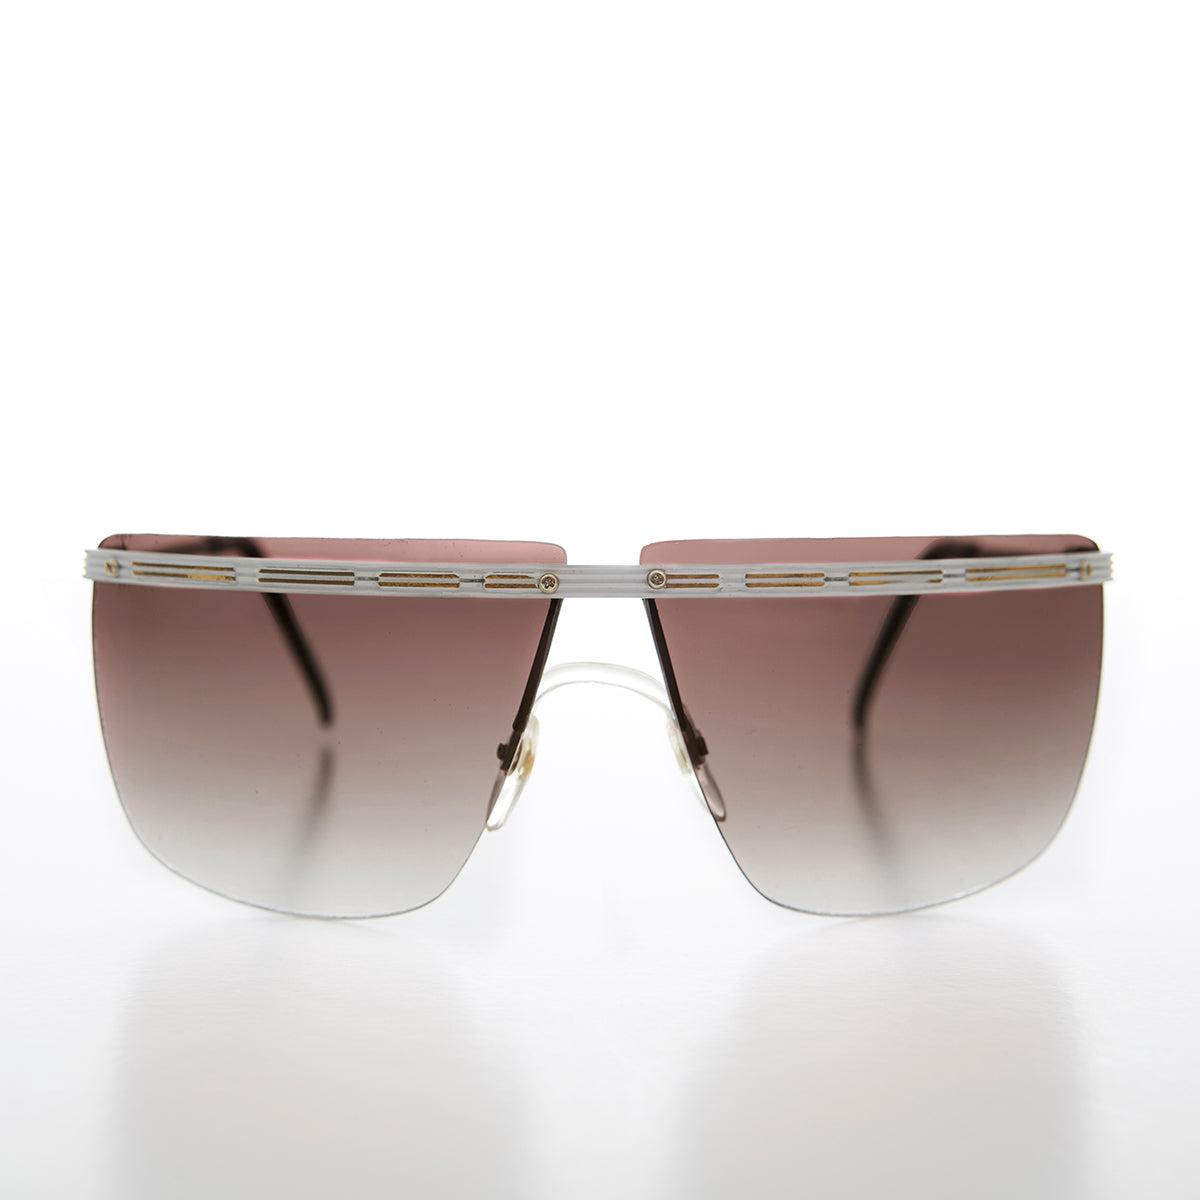 Big 80s Rimless Sunglass with Gold Detail